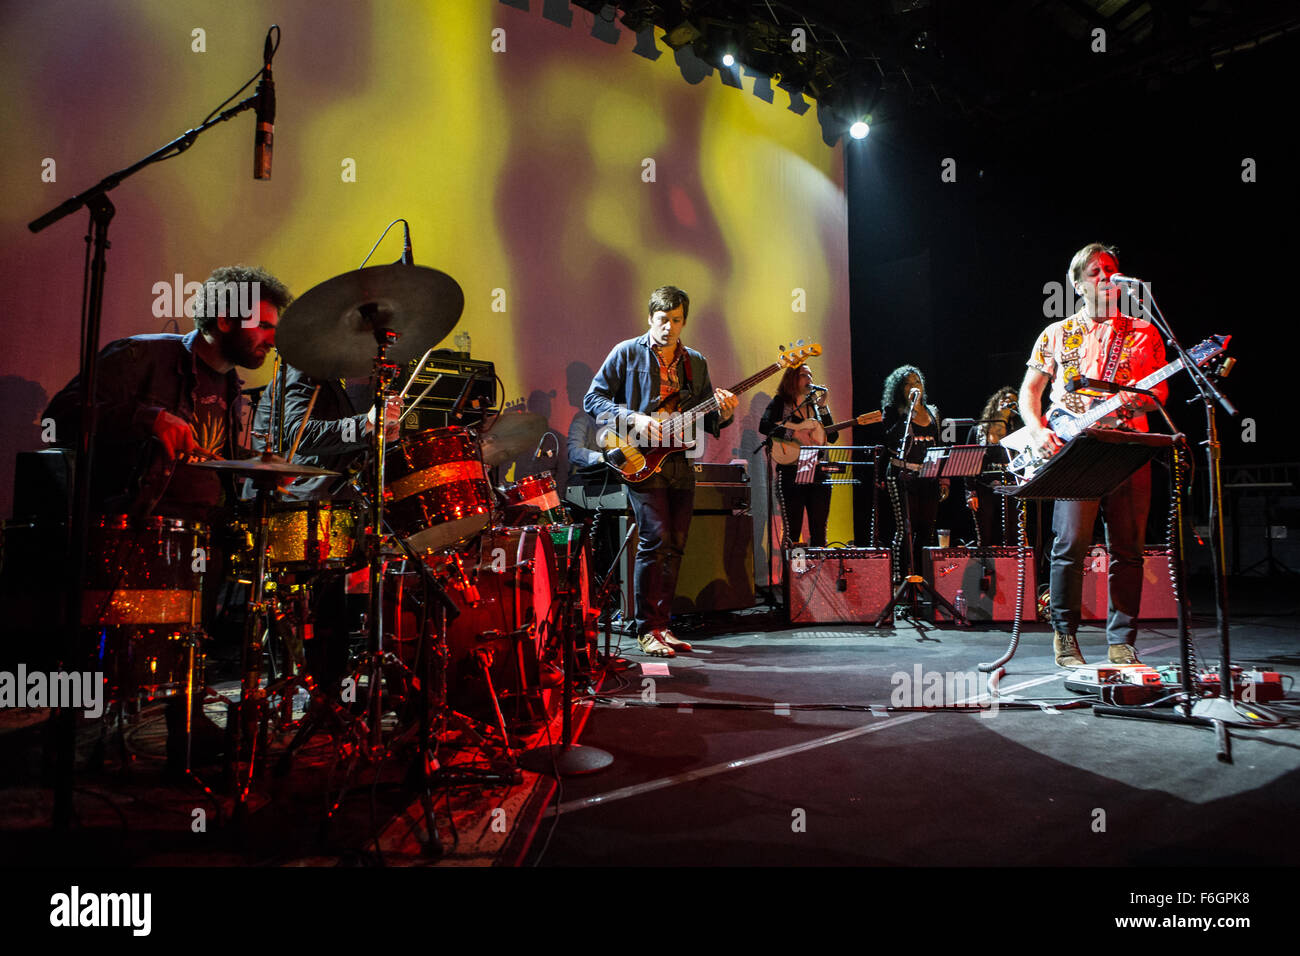 Milan, Italy. 16th Nov 2015. The American rock band THE ARCS a side-project by Dan Auerbach of The Black Keys performs - Stock Image